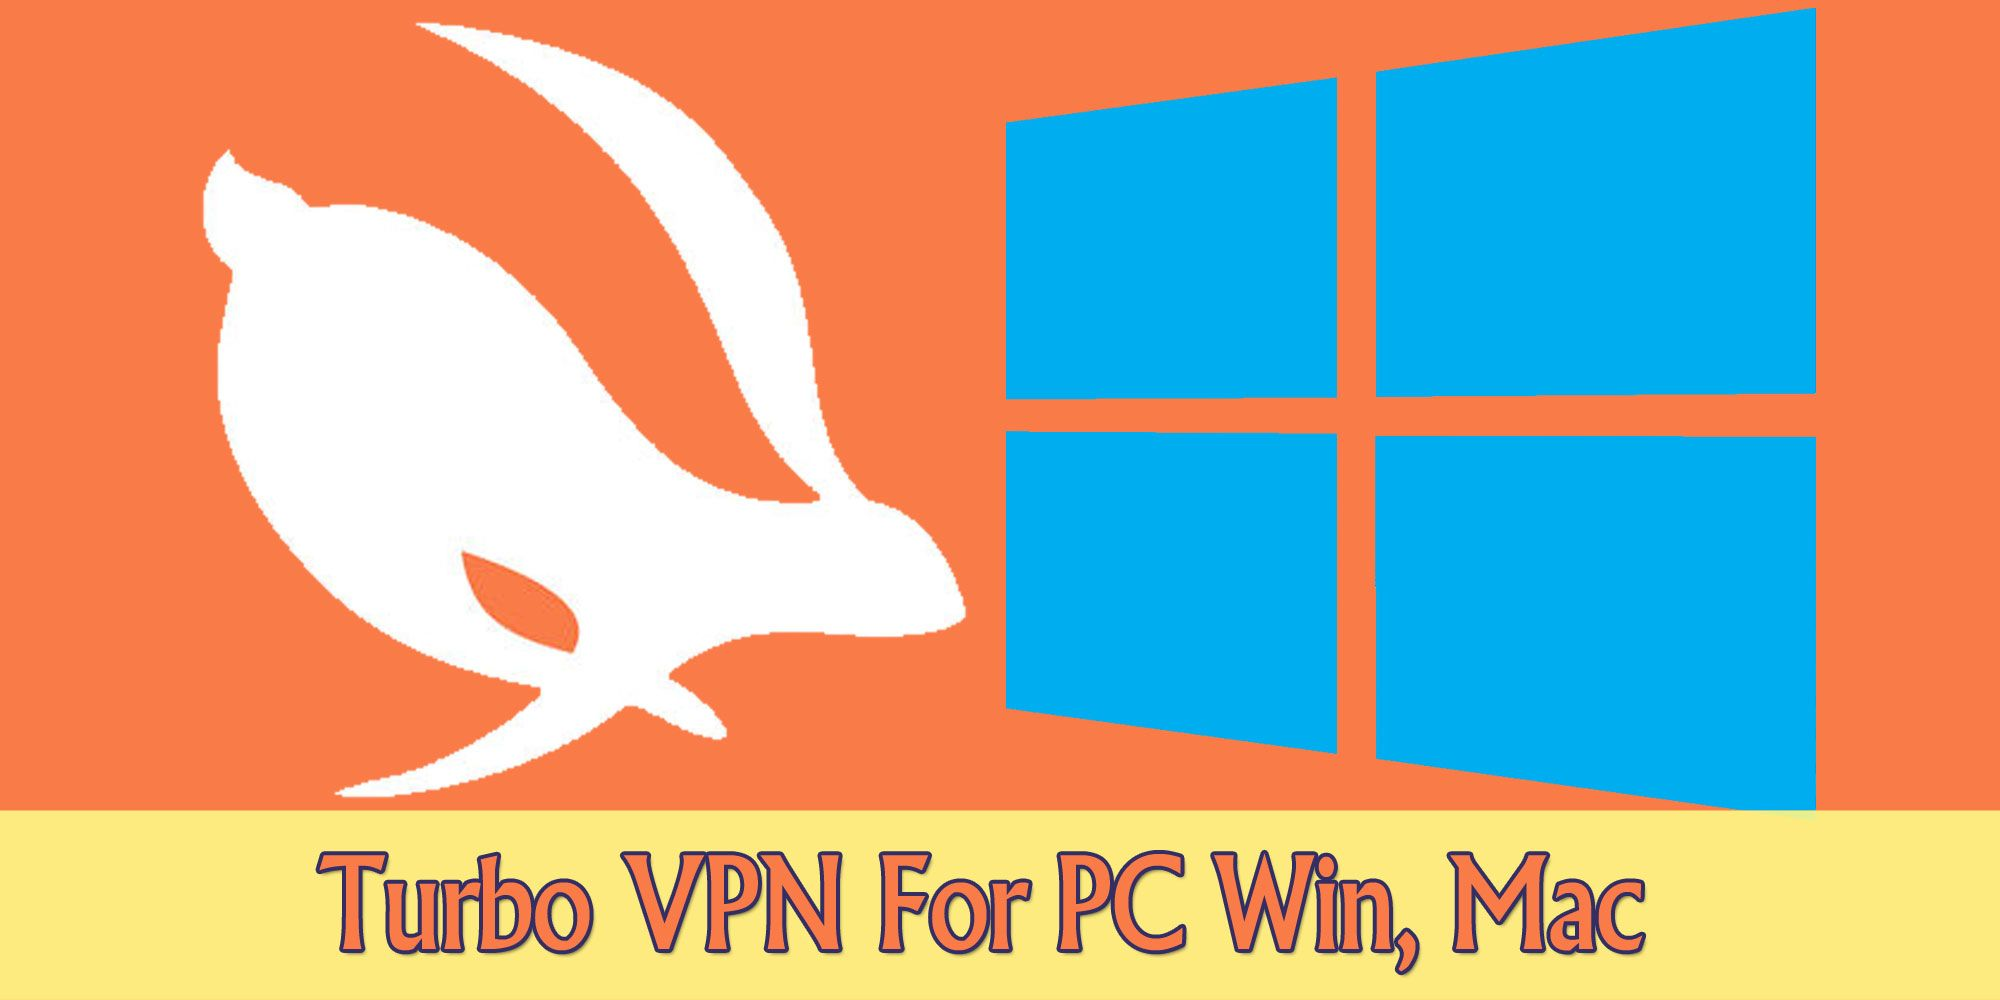 d81927af4b16b1df90271de7abc18d82 - How To Connect Vpn In Windows 8